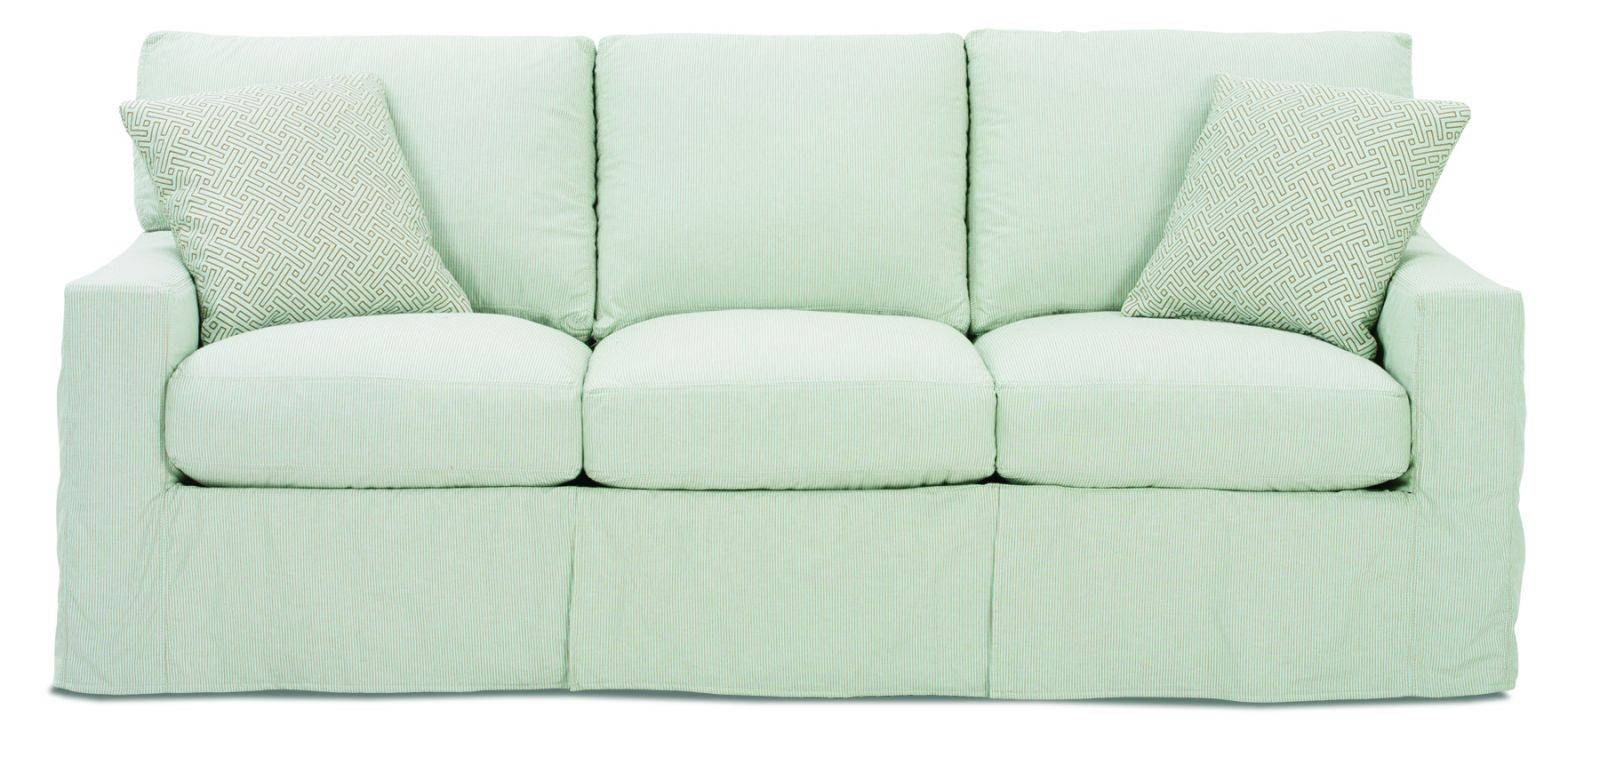 Slipcover Sofa Brands - Slipcover Sofas For Instant Fresh New pertaining to Slipcover Style Sofas (Image 12 of 15)